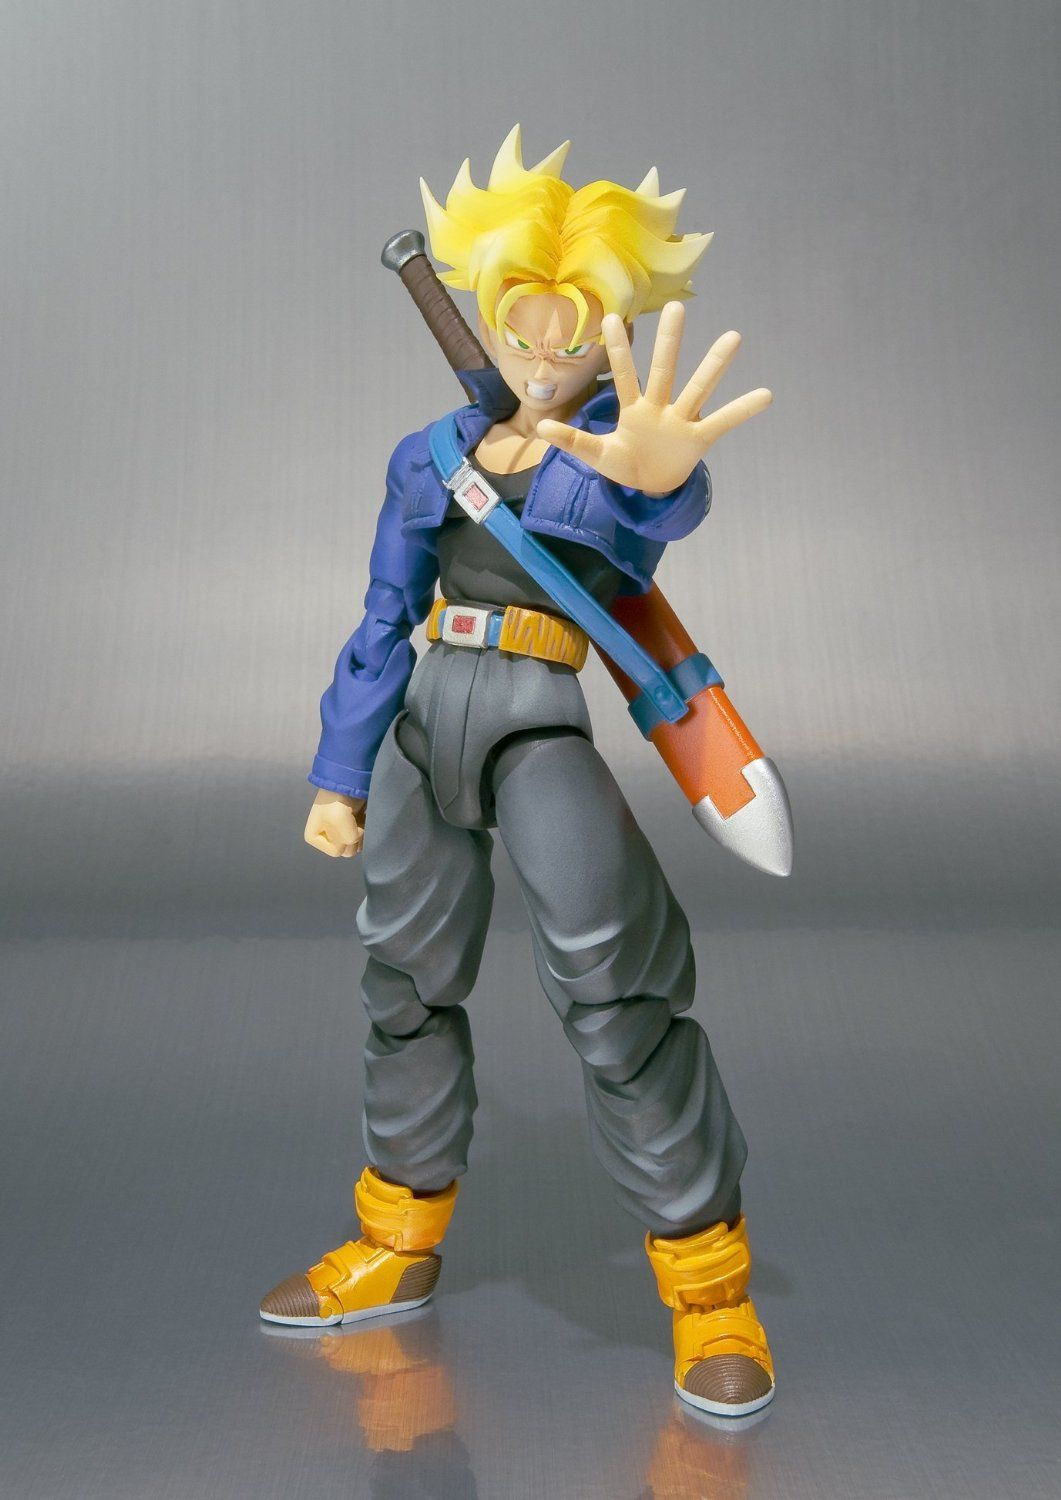 Bandai Trunks S.H. Figuarts Toys & Games